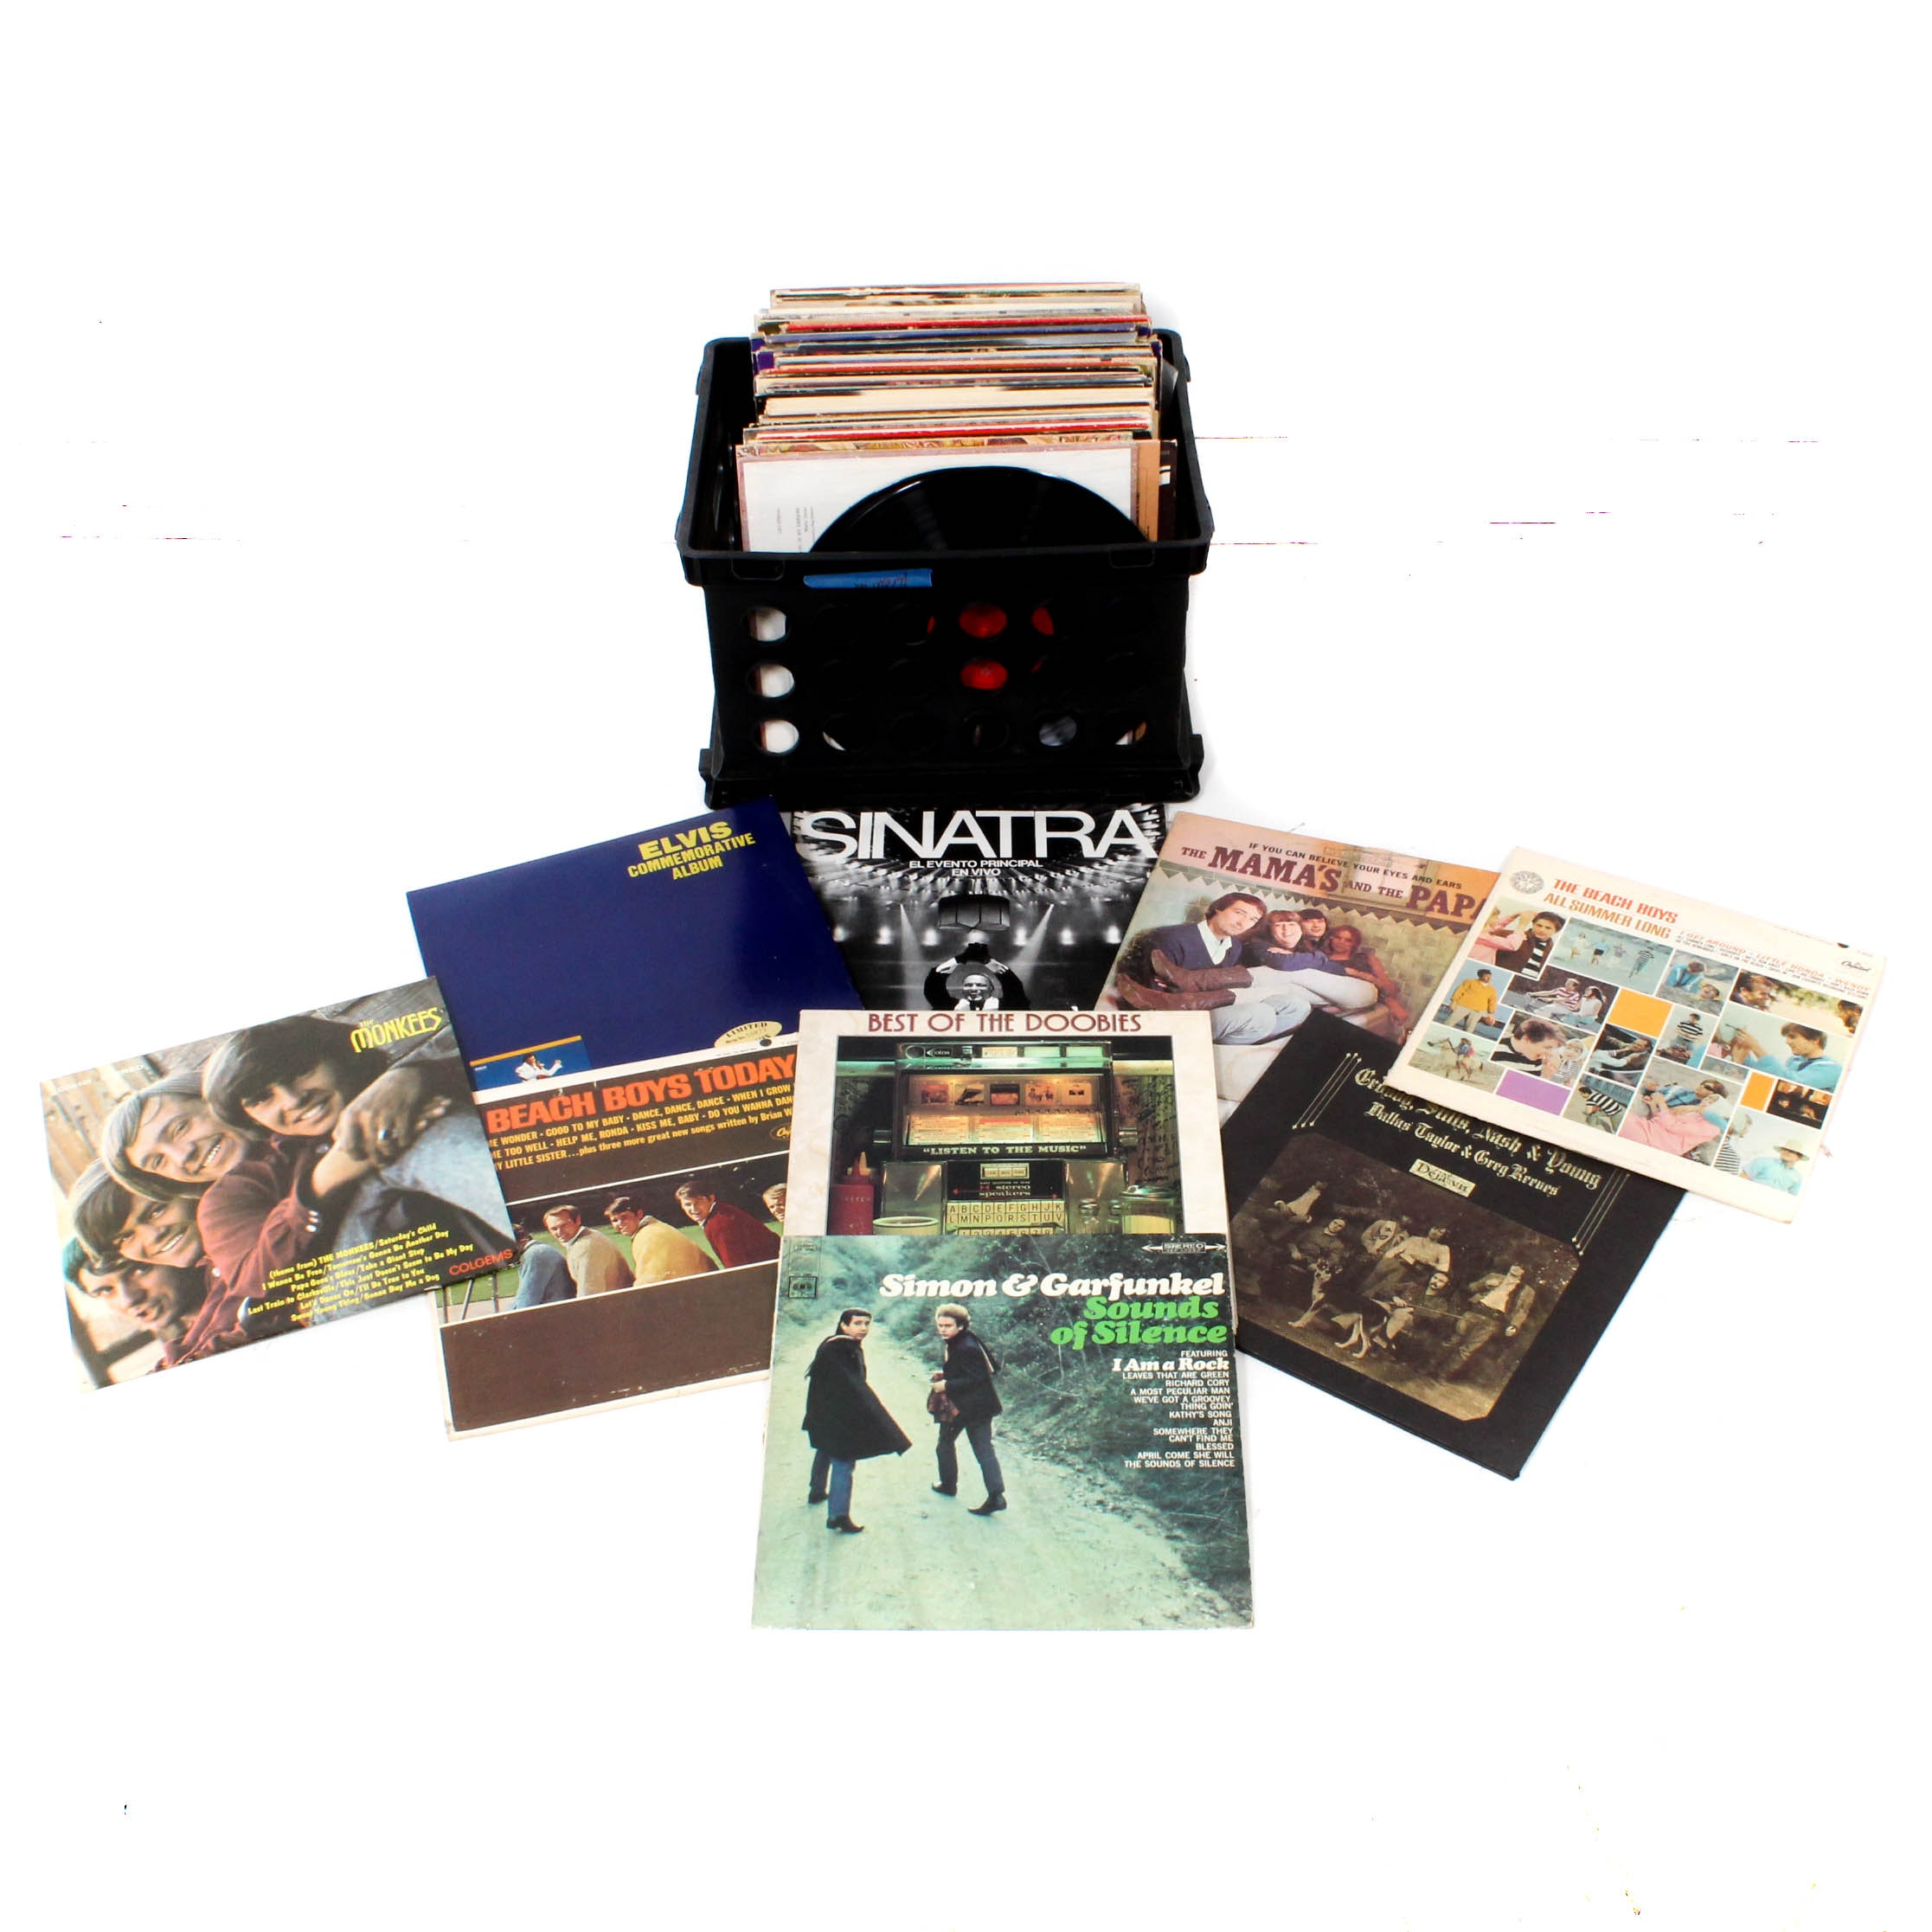 Vinyl Records Featuring Elvis, Sinatra, The Monkees and More